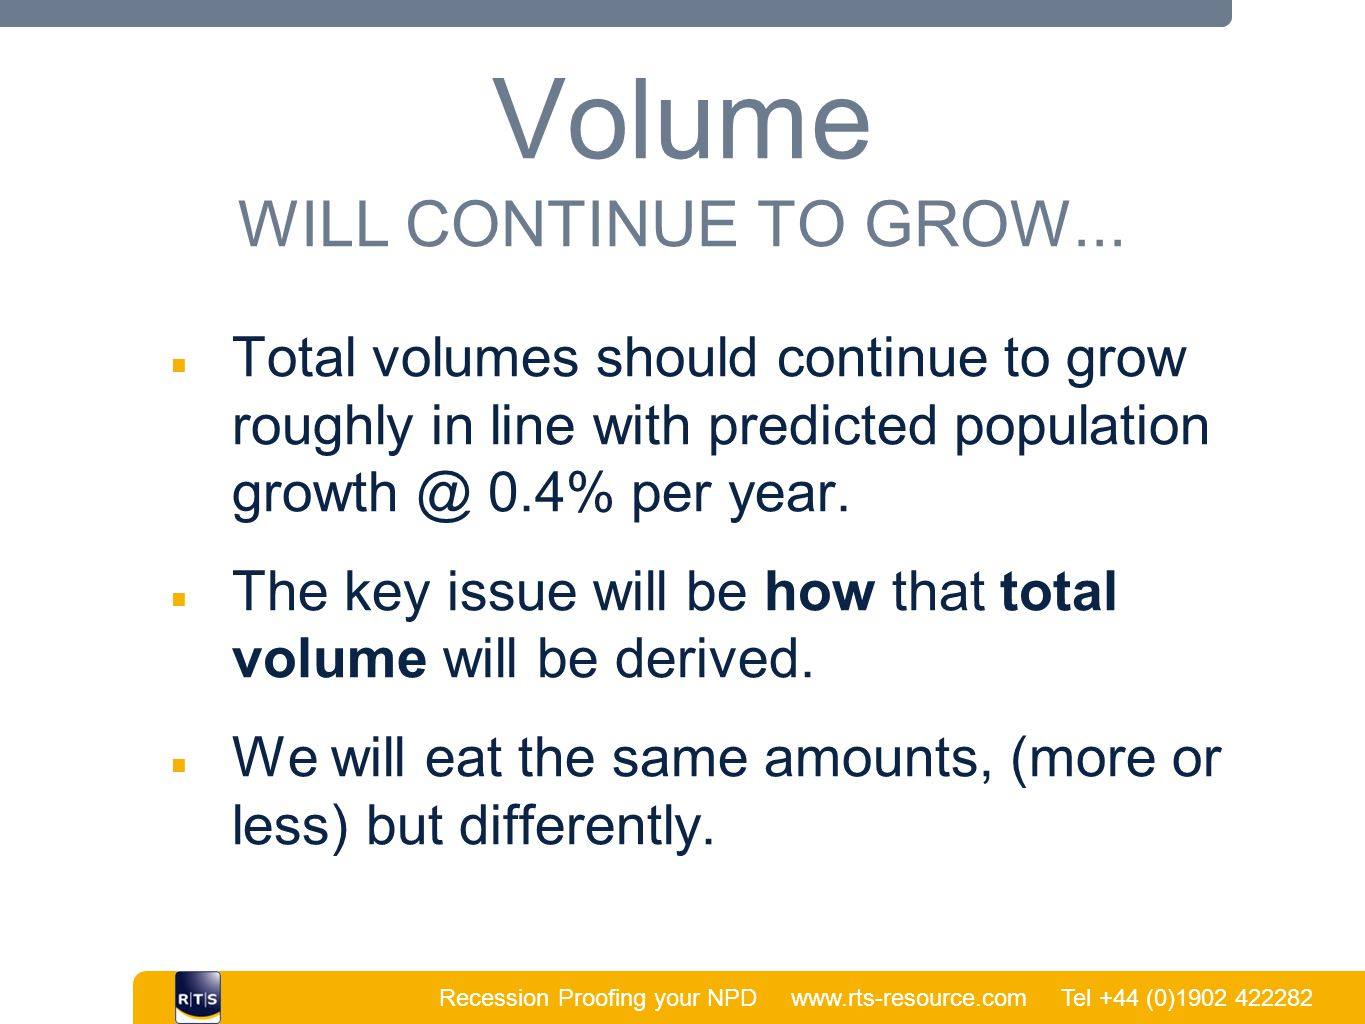 Recession Proofing your NPD www.rts-resource.com Tel +44 (0)1902 422282 | Volume WILL CONTINUE TO GROW...